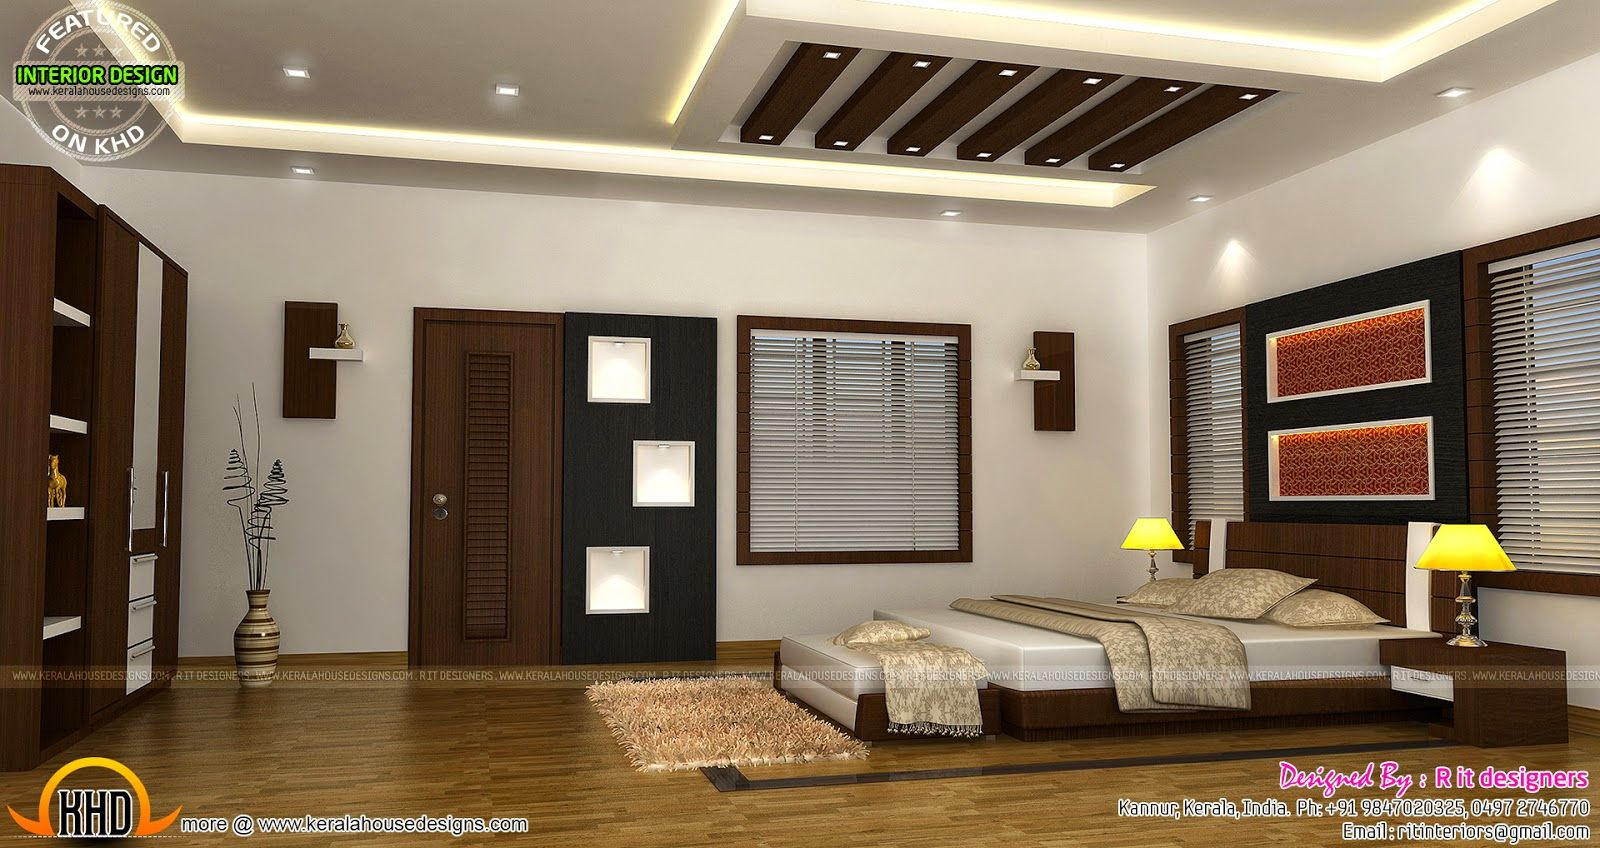 Kerala Home Interior Design Photos Middle Class Interior Design